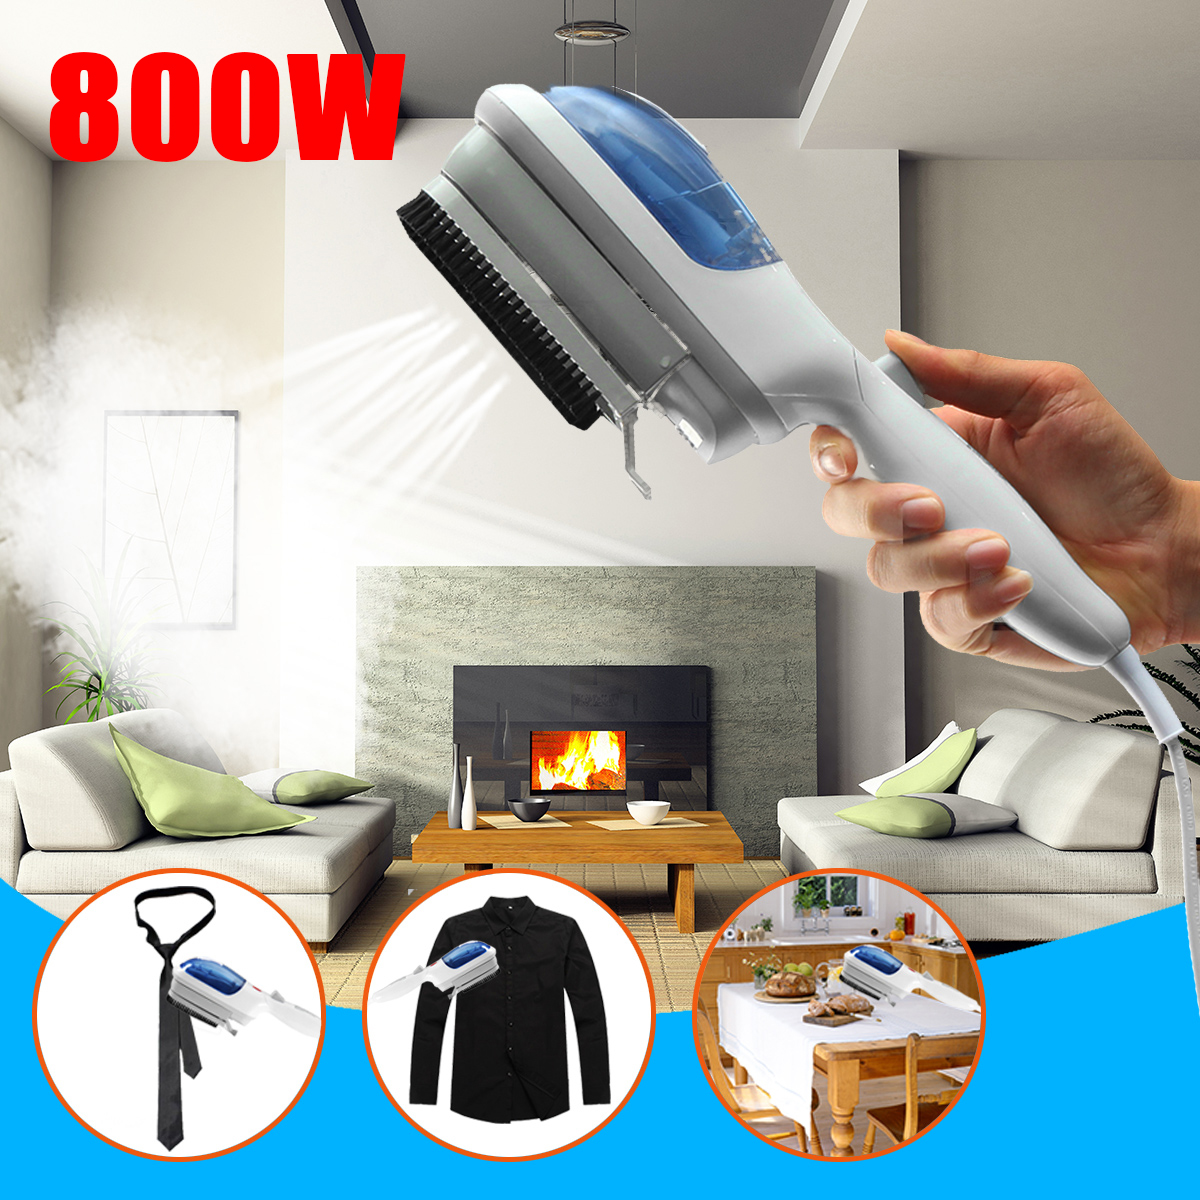 Portable Electric Handheld Brush Steamer Iron Electric steam iron , Home Garment & Fabric &Clothes Handheld Steamer, US 110V